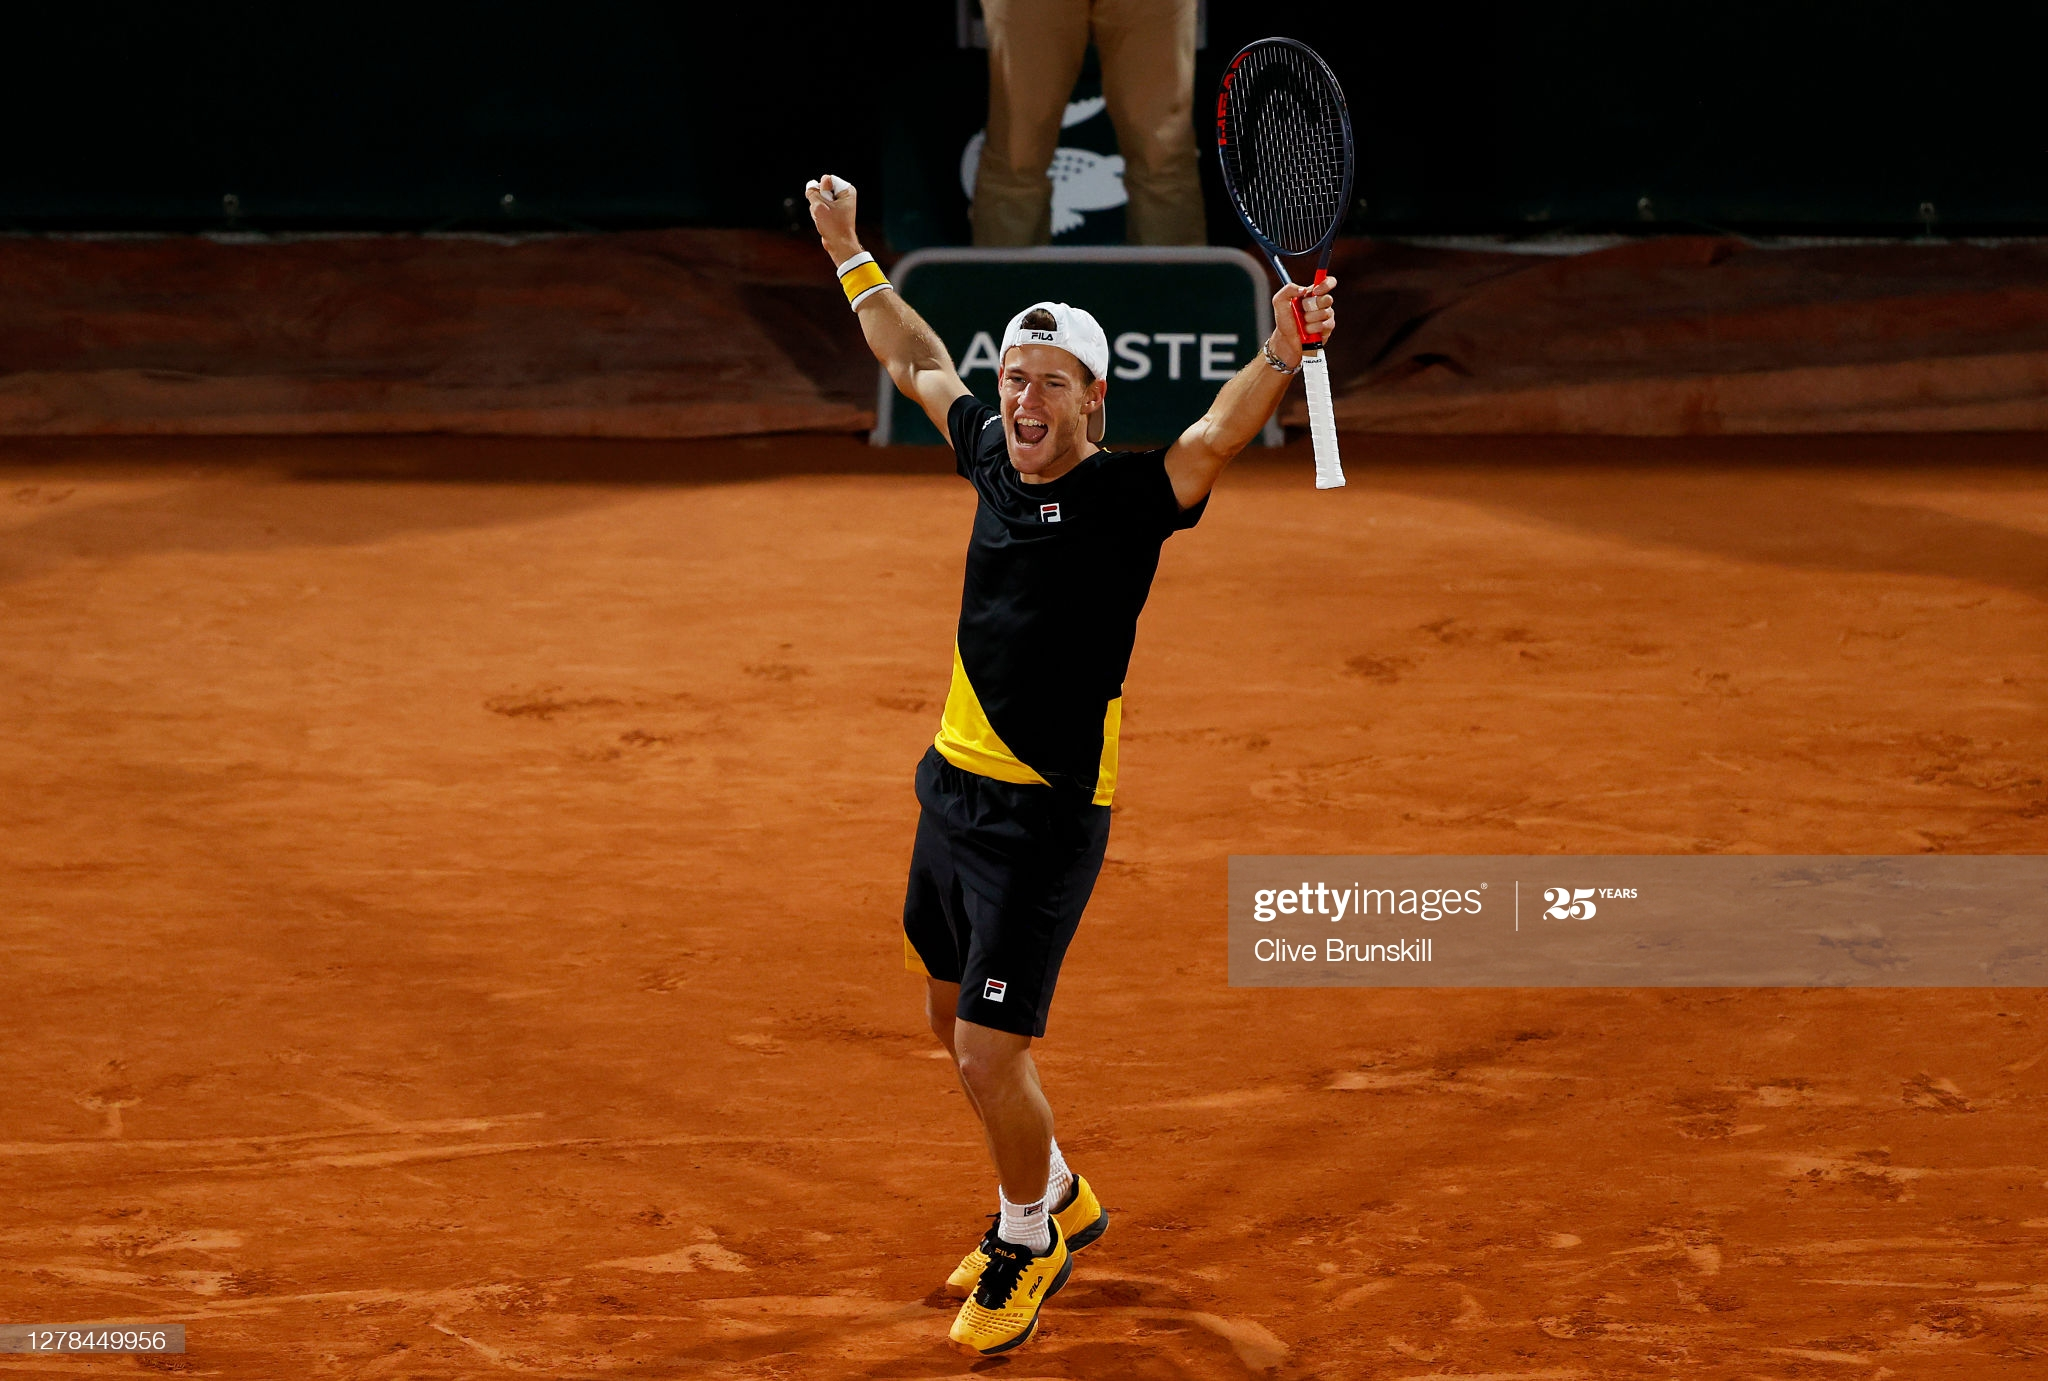 diego schwartzman day 8 french open 2020